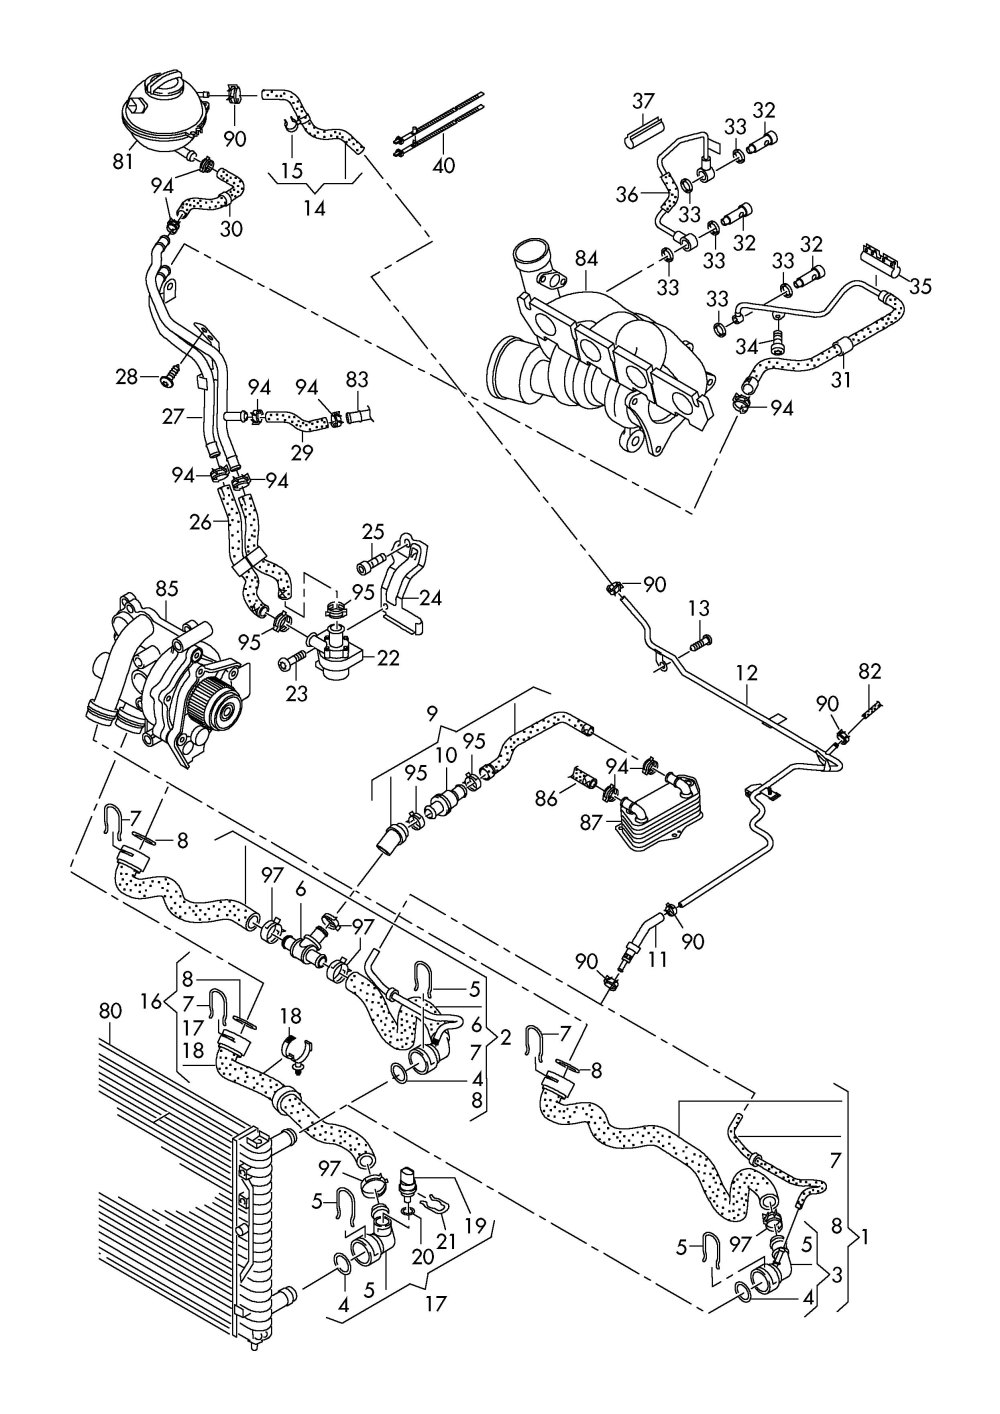 medium resolution of ea888 gen 3 engine diagram get free image about wiring 2009 volkswagen tiguan engine water hose